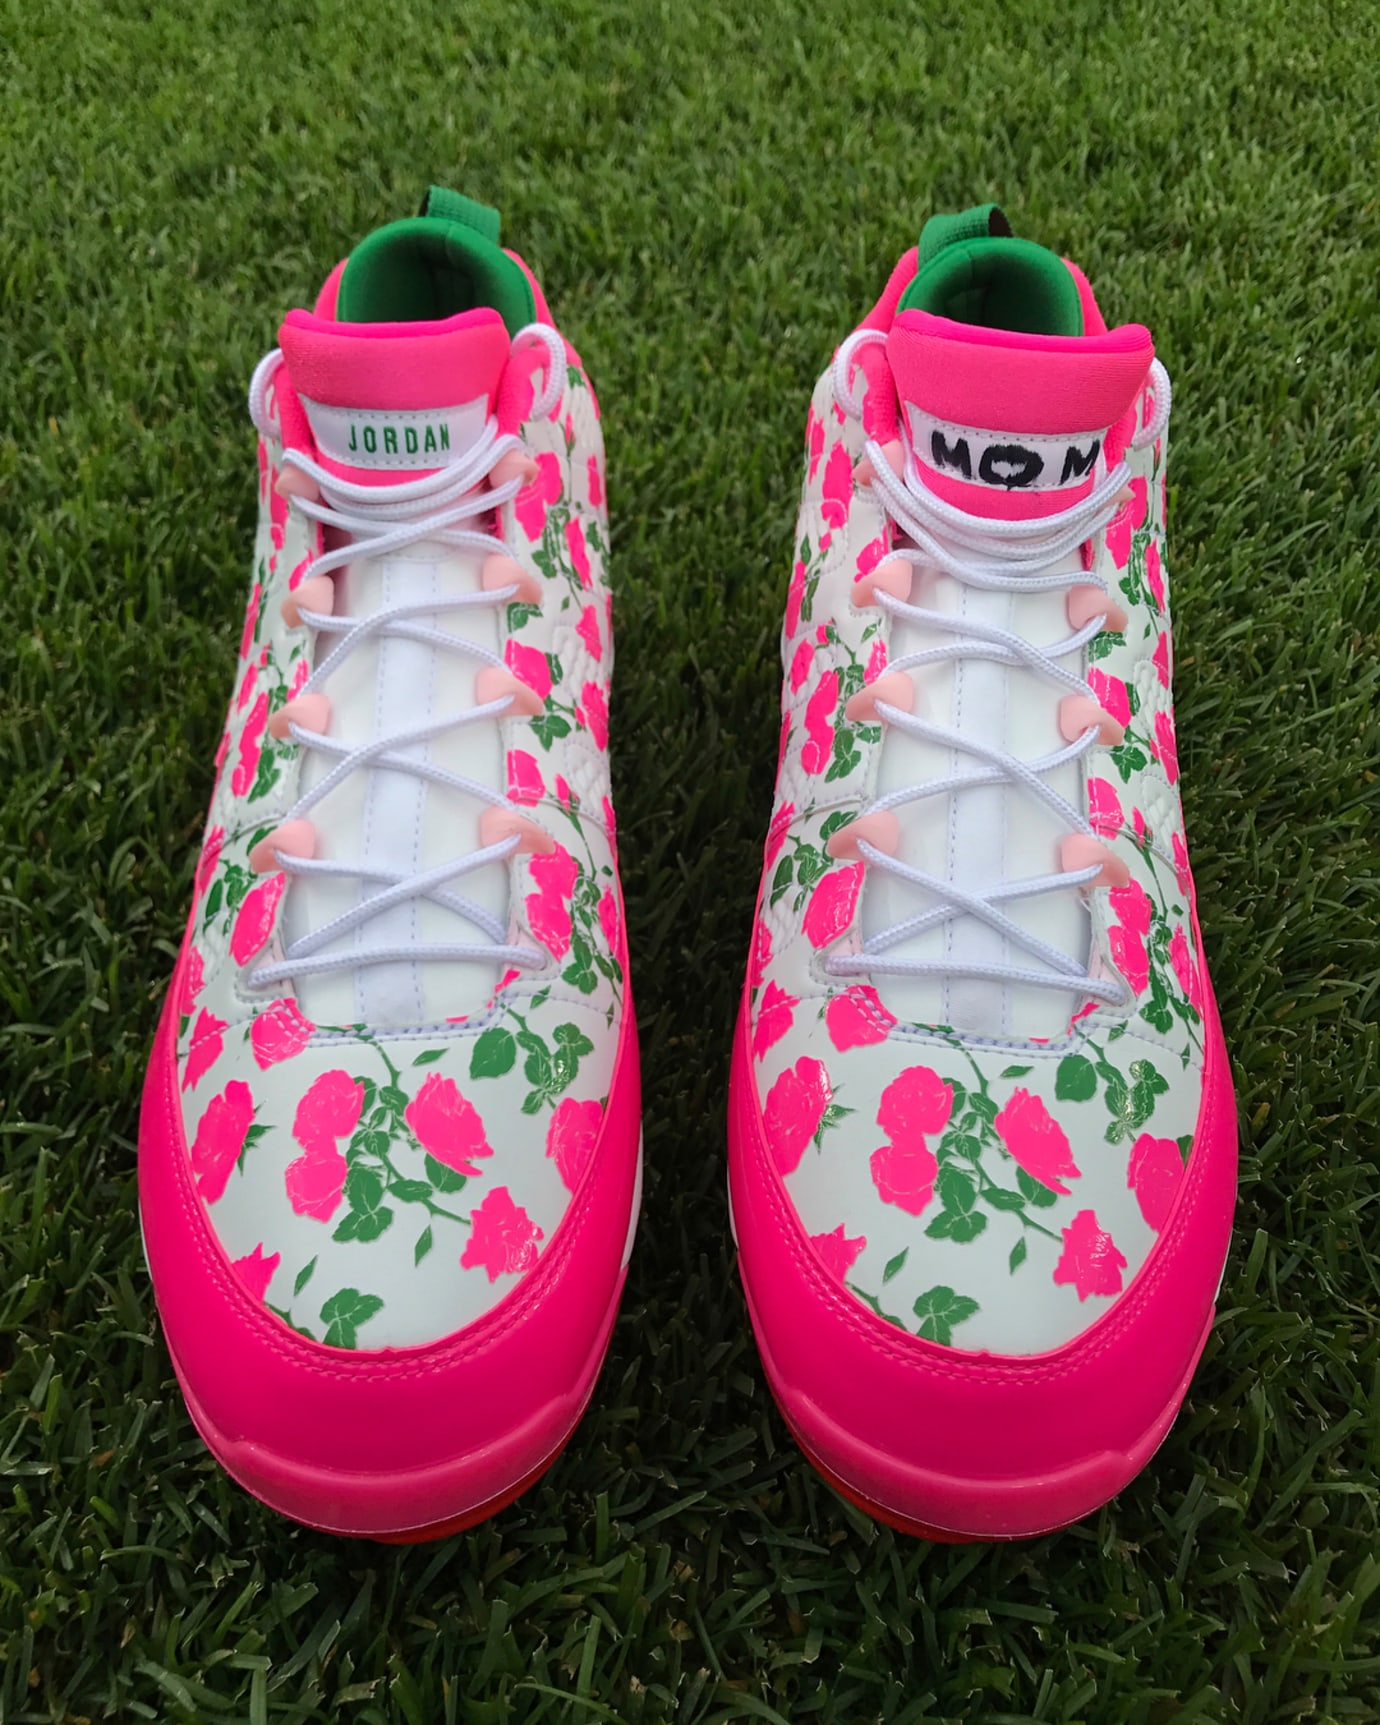 2676b66b3 Image via Dellin Betances · Air Jordan 9 Low Mother s Day Manny Machado PE  Front